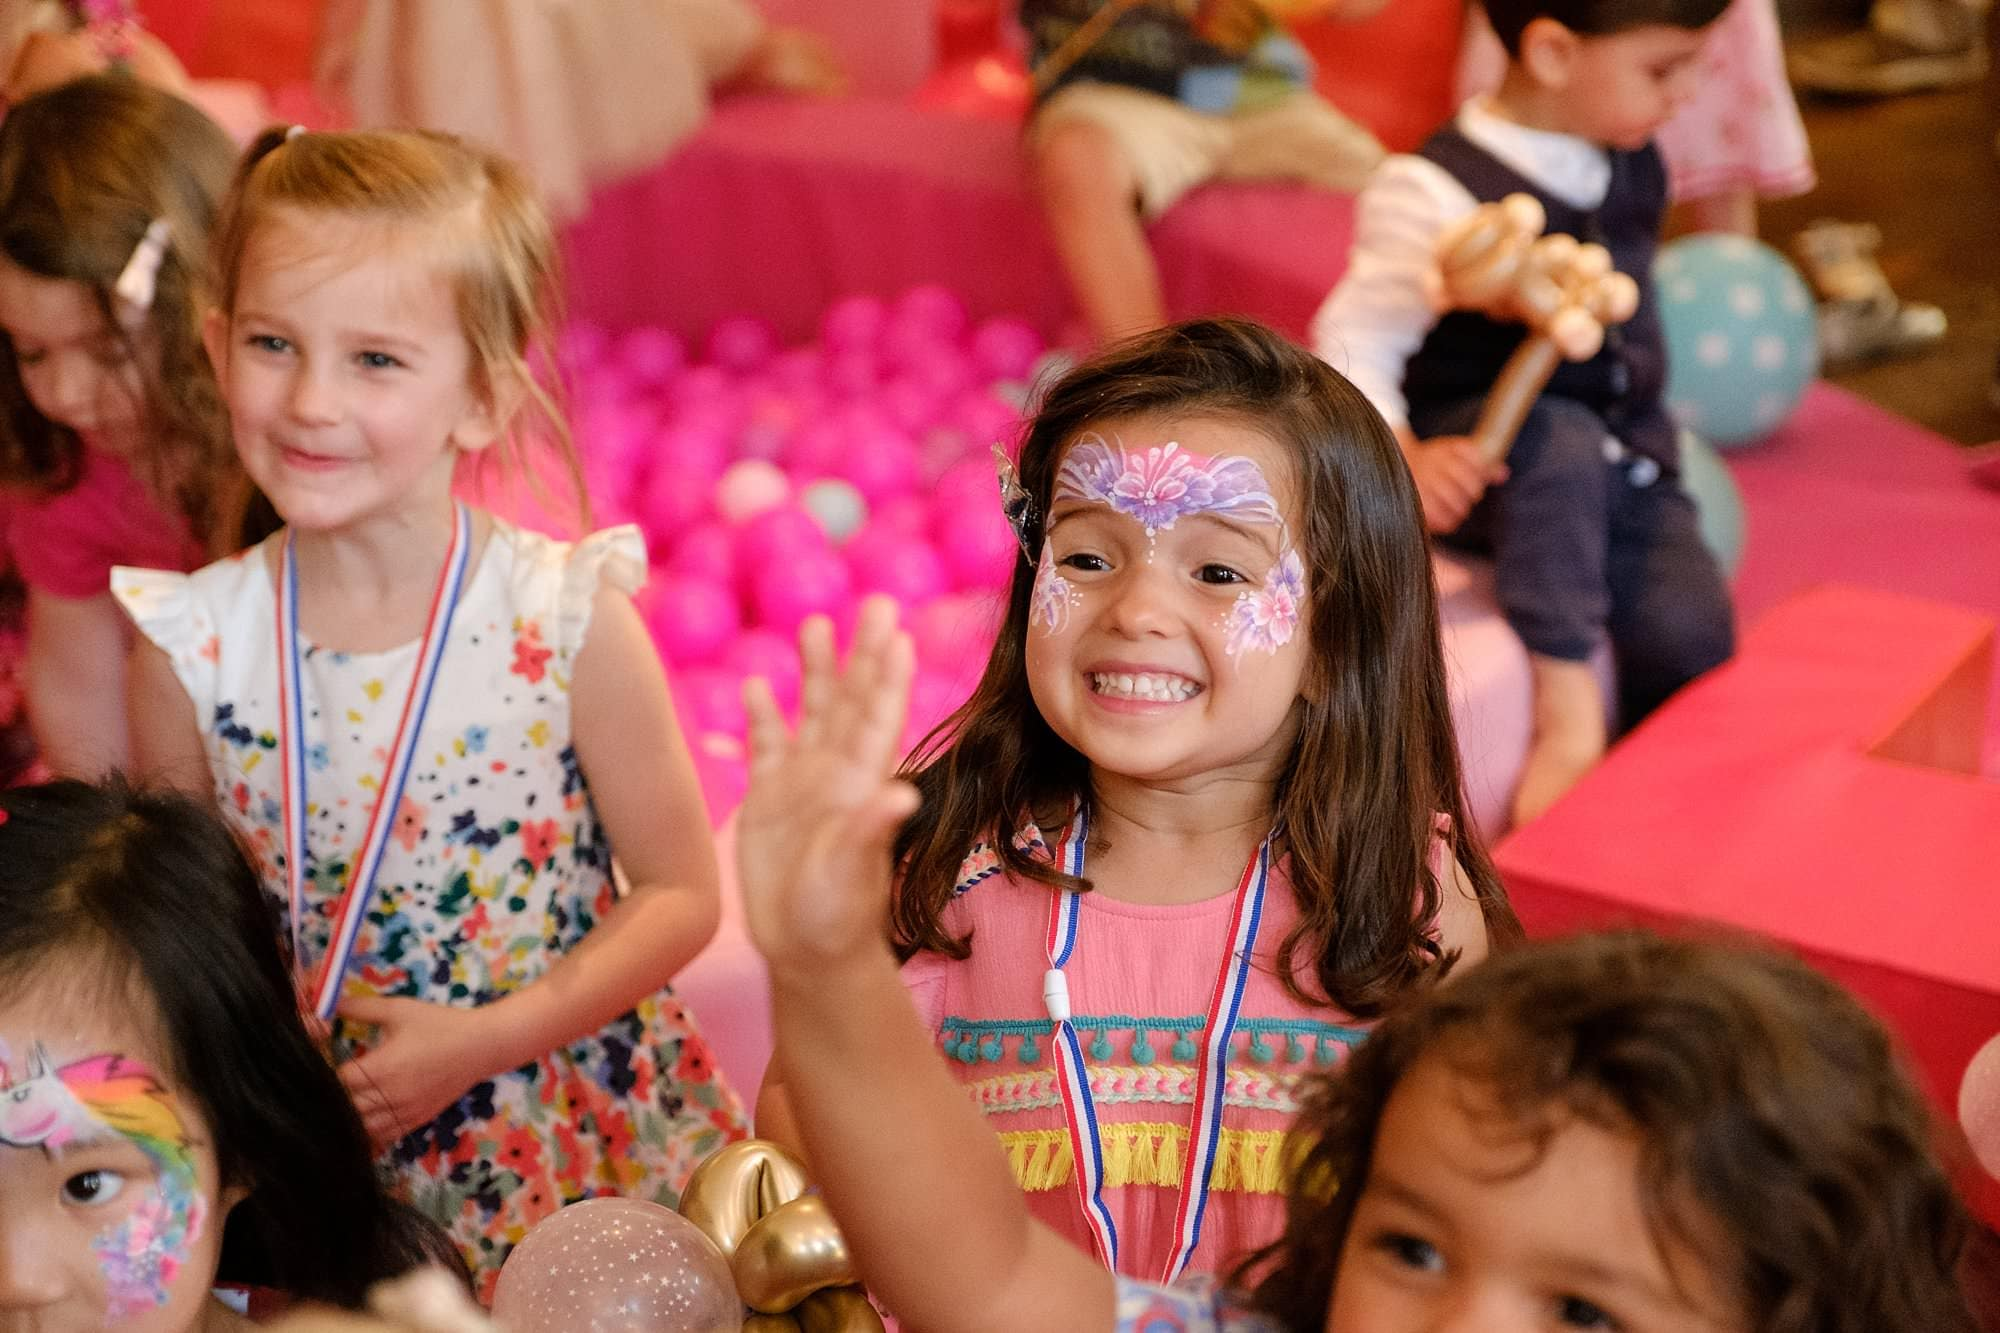 childrens party photographer chelsea beaufort house 029 - A 3rd Birthday Party in Beaufort House Chelsea